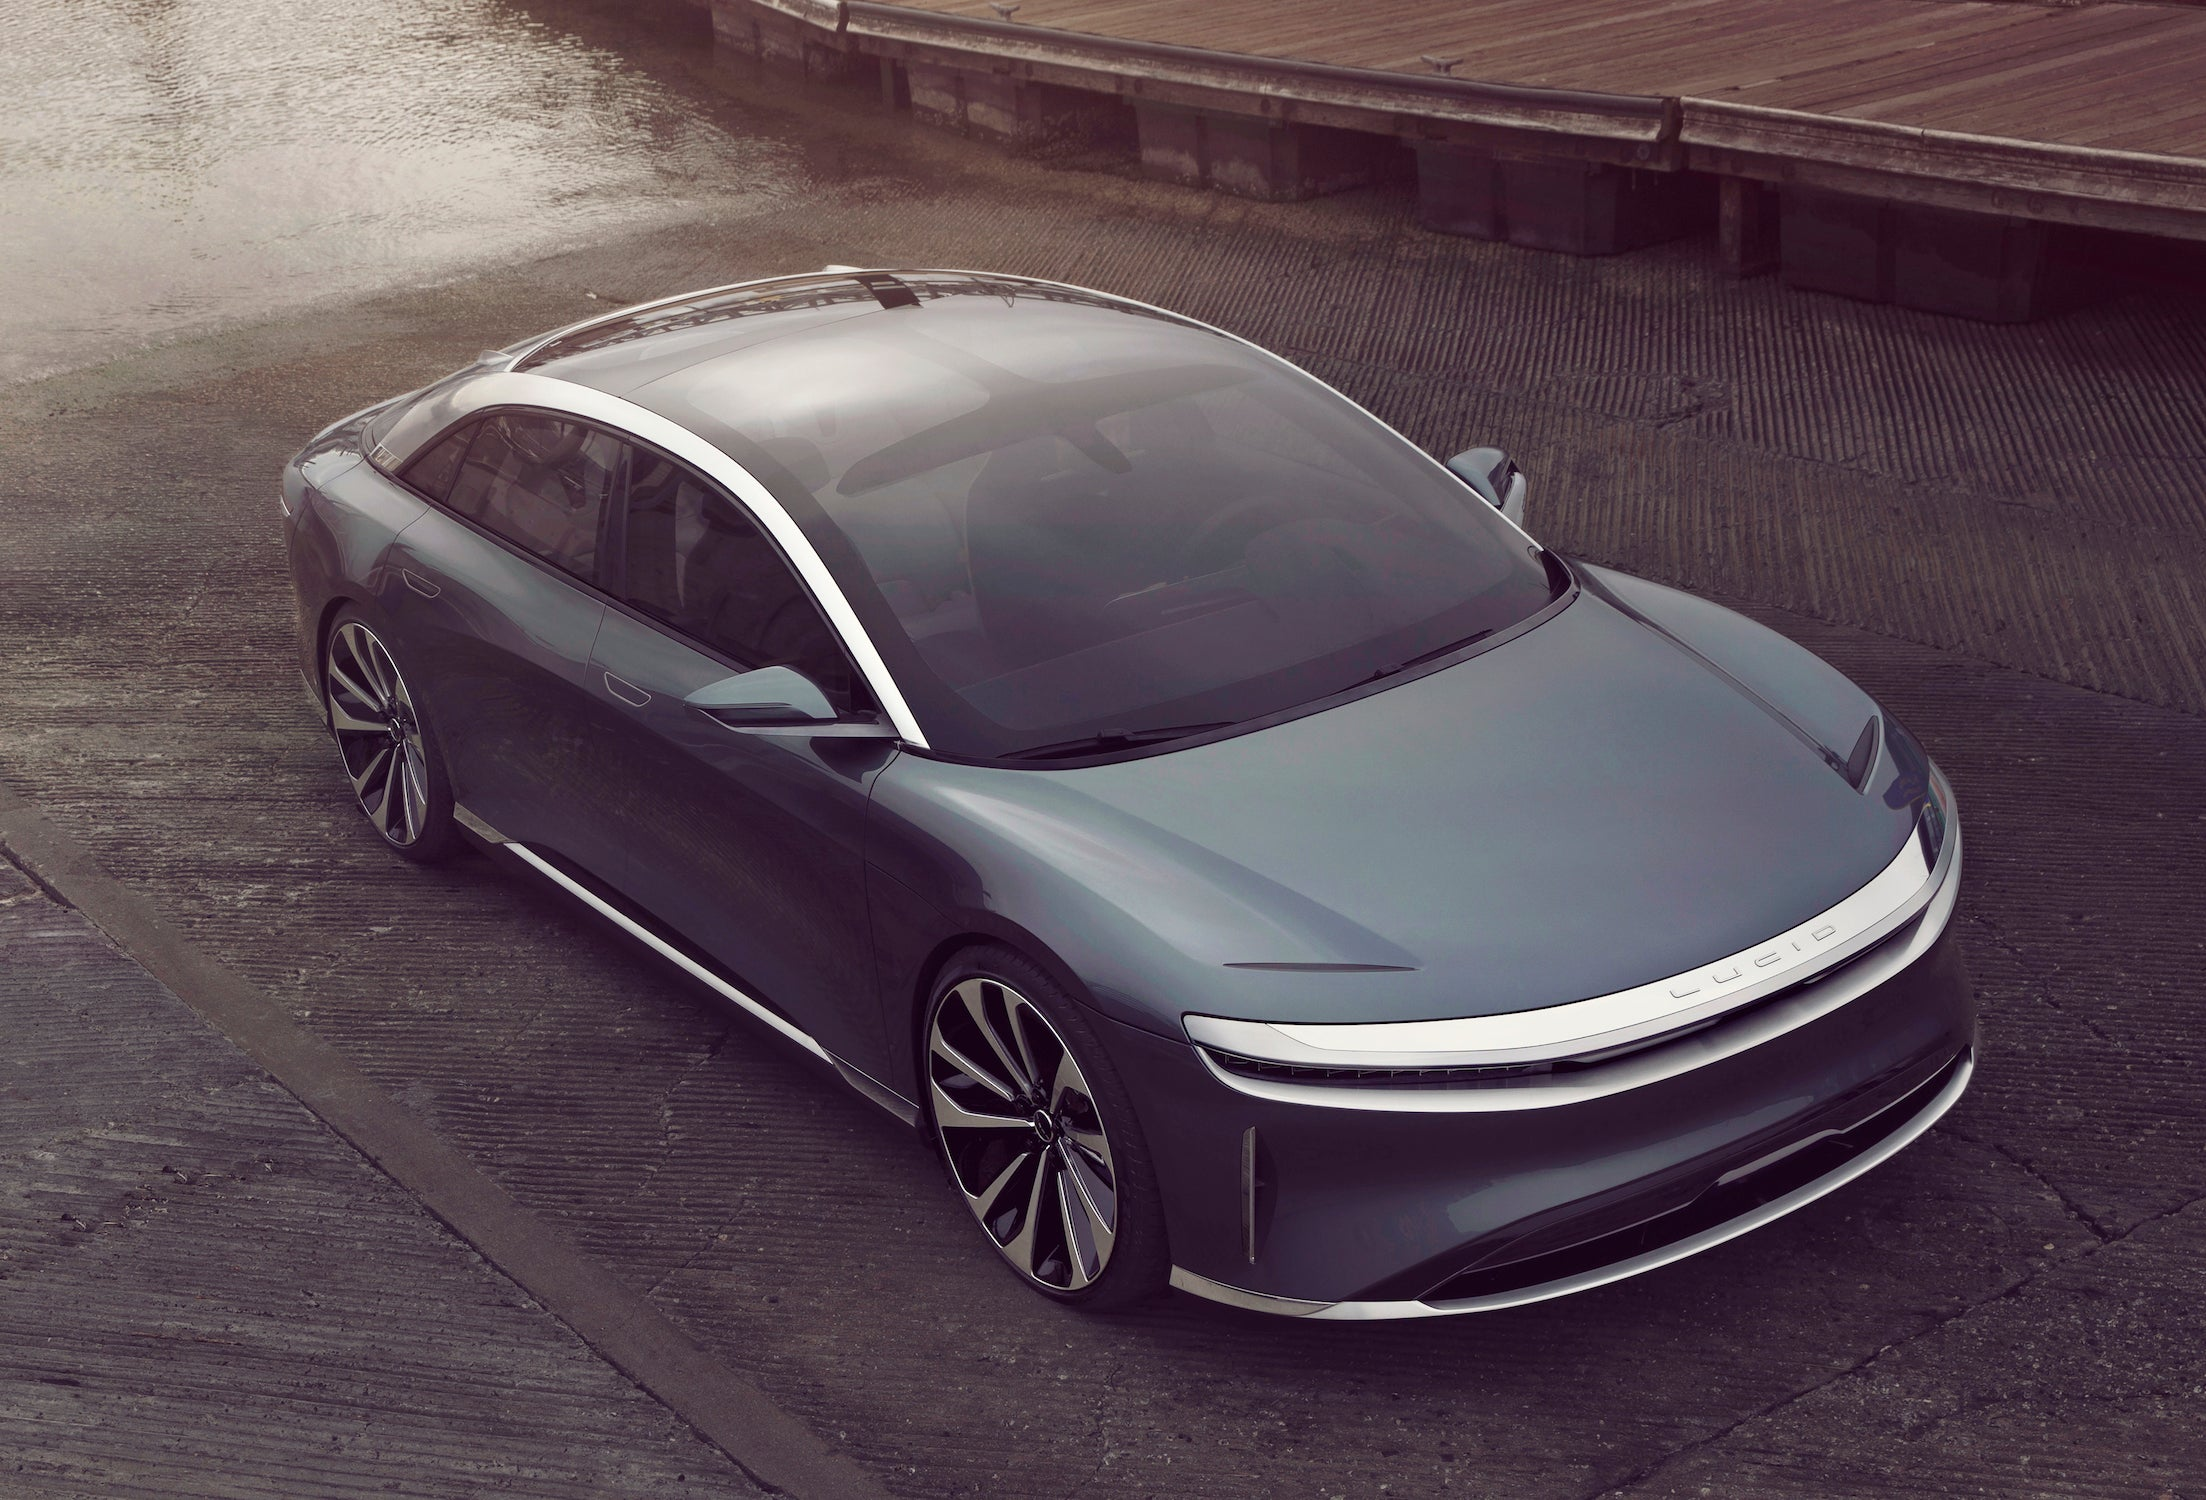 Here S How Lucid Motors Will Neutralize Tesla S Supercharger Advantage The Motley Fool